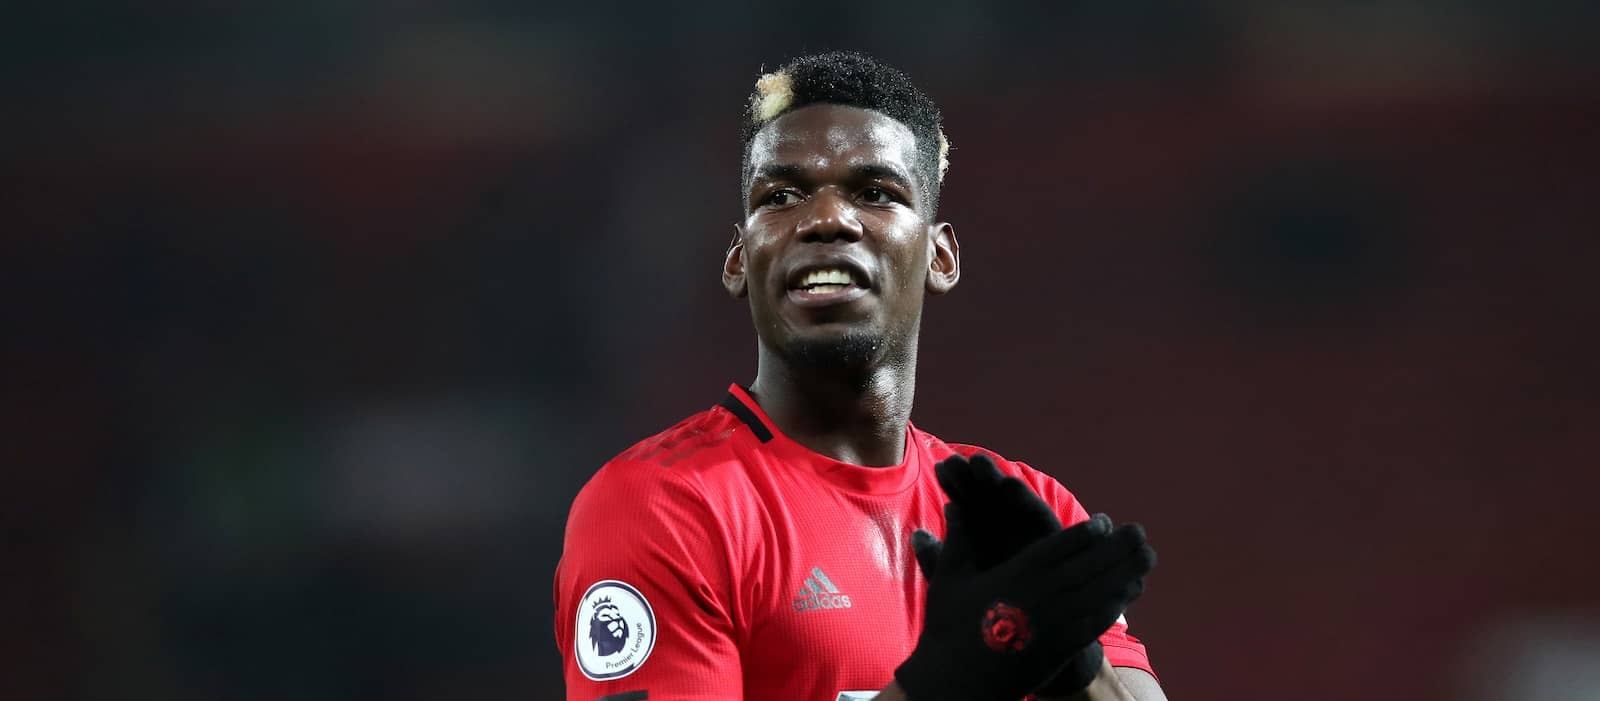 What will happen to Paul Pogba in football's financial crisis?